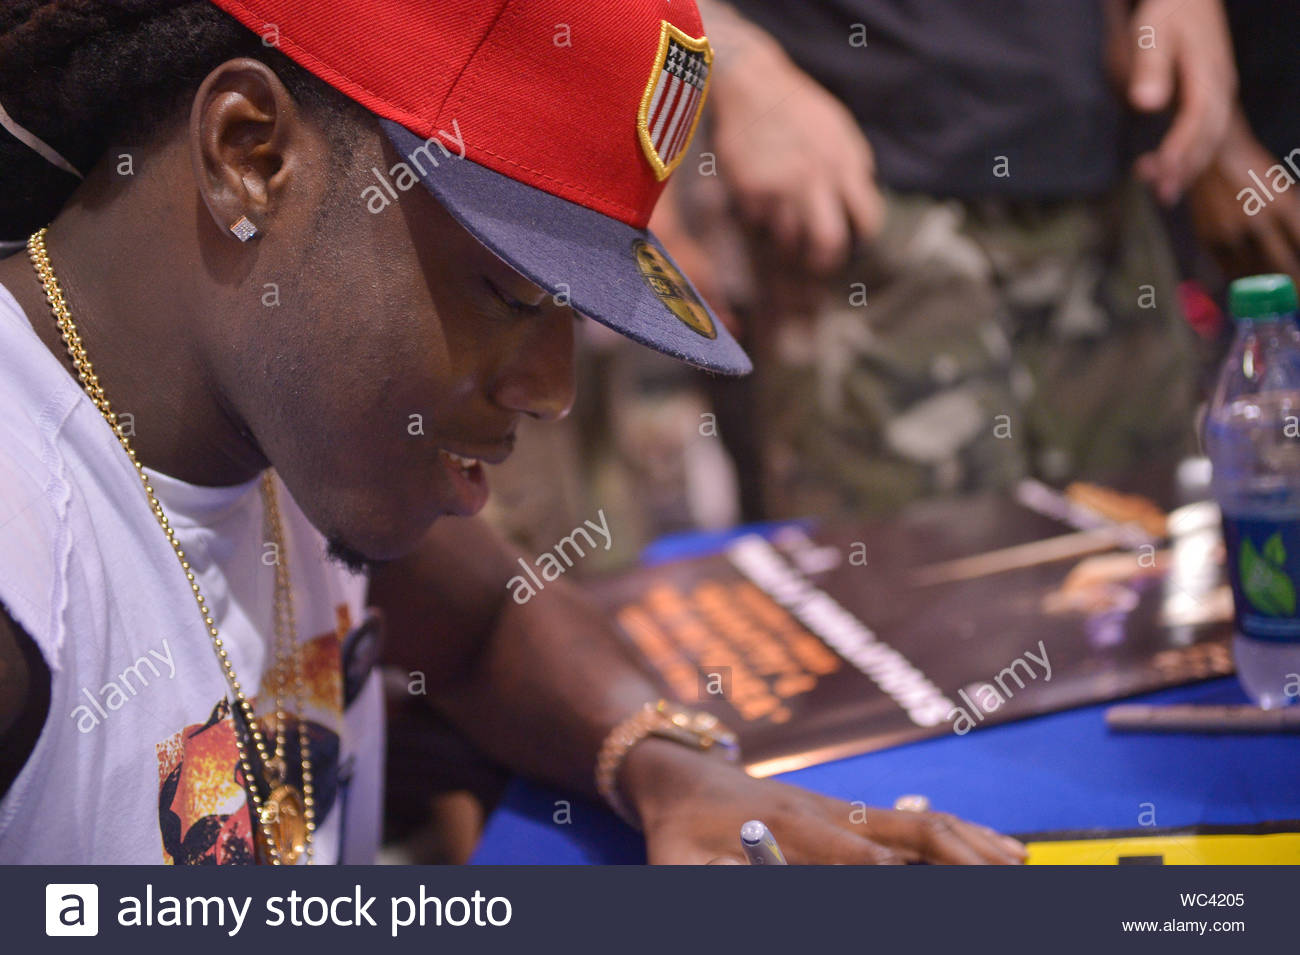 miami fl rapper ace hood signs copies of his new cd trials tribulations at best buy pembroke pines akm gsi july 19 2013 stock photo alamy alamy